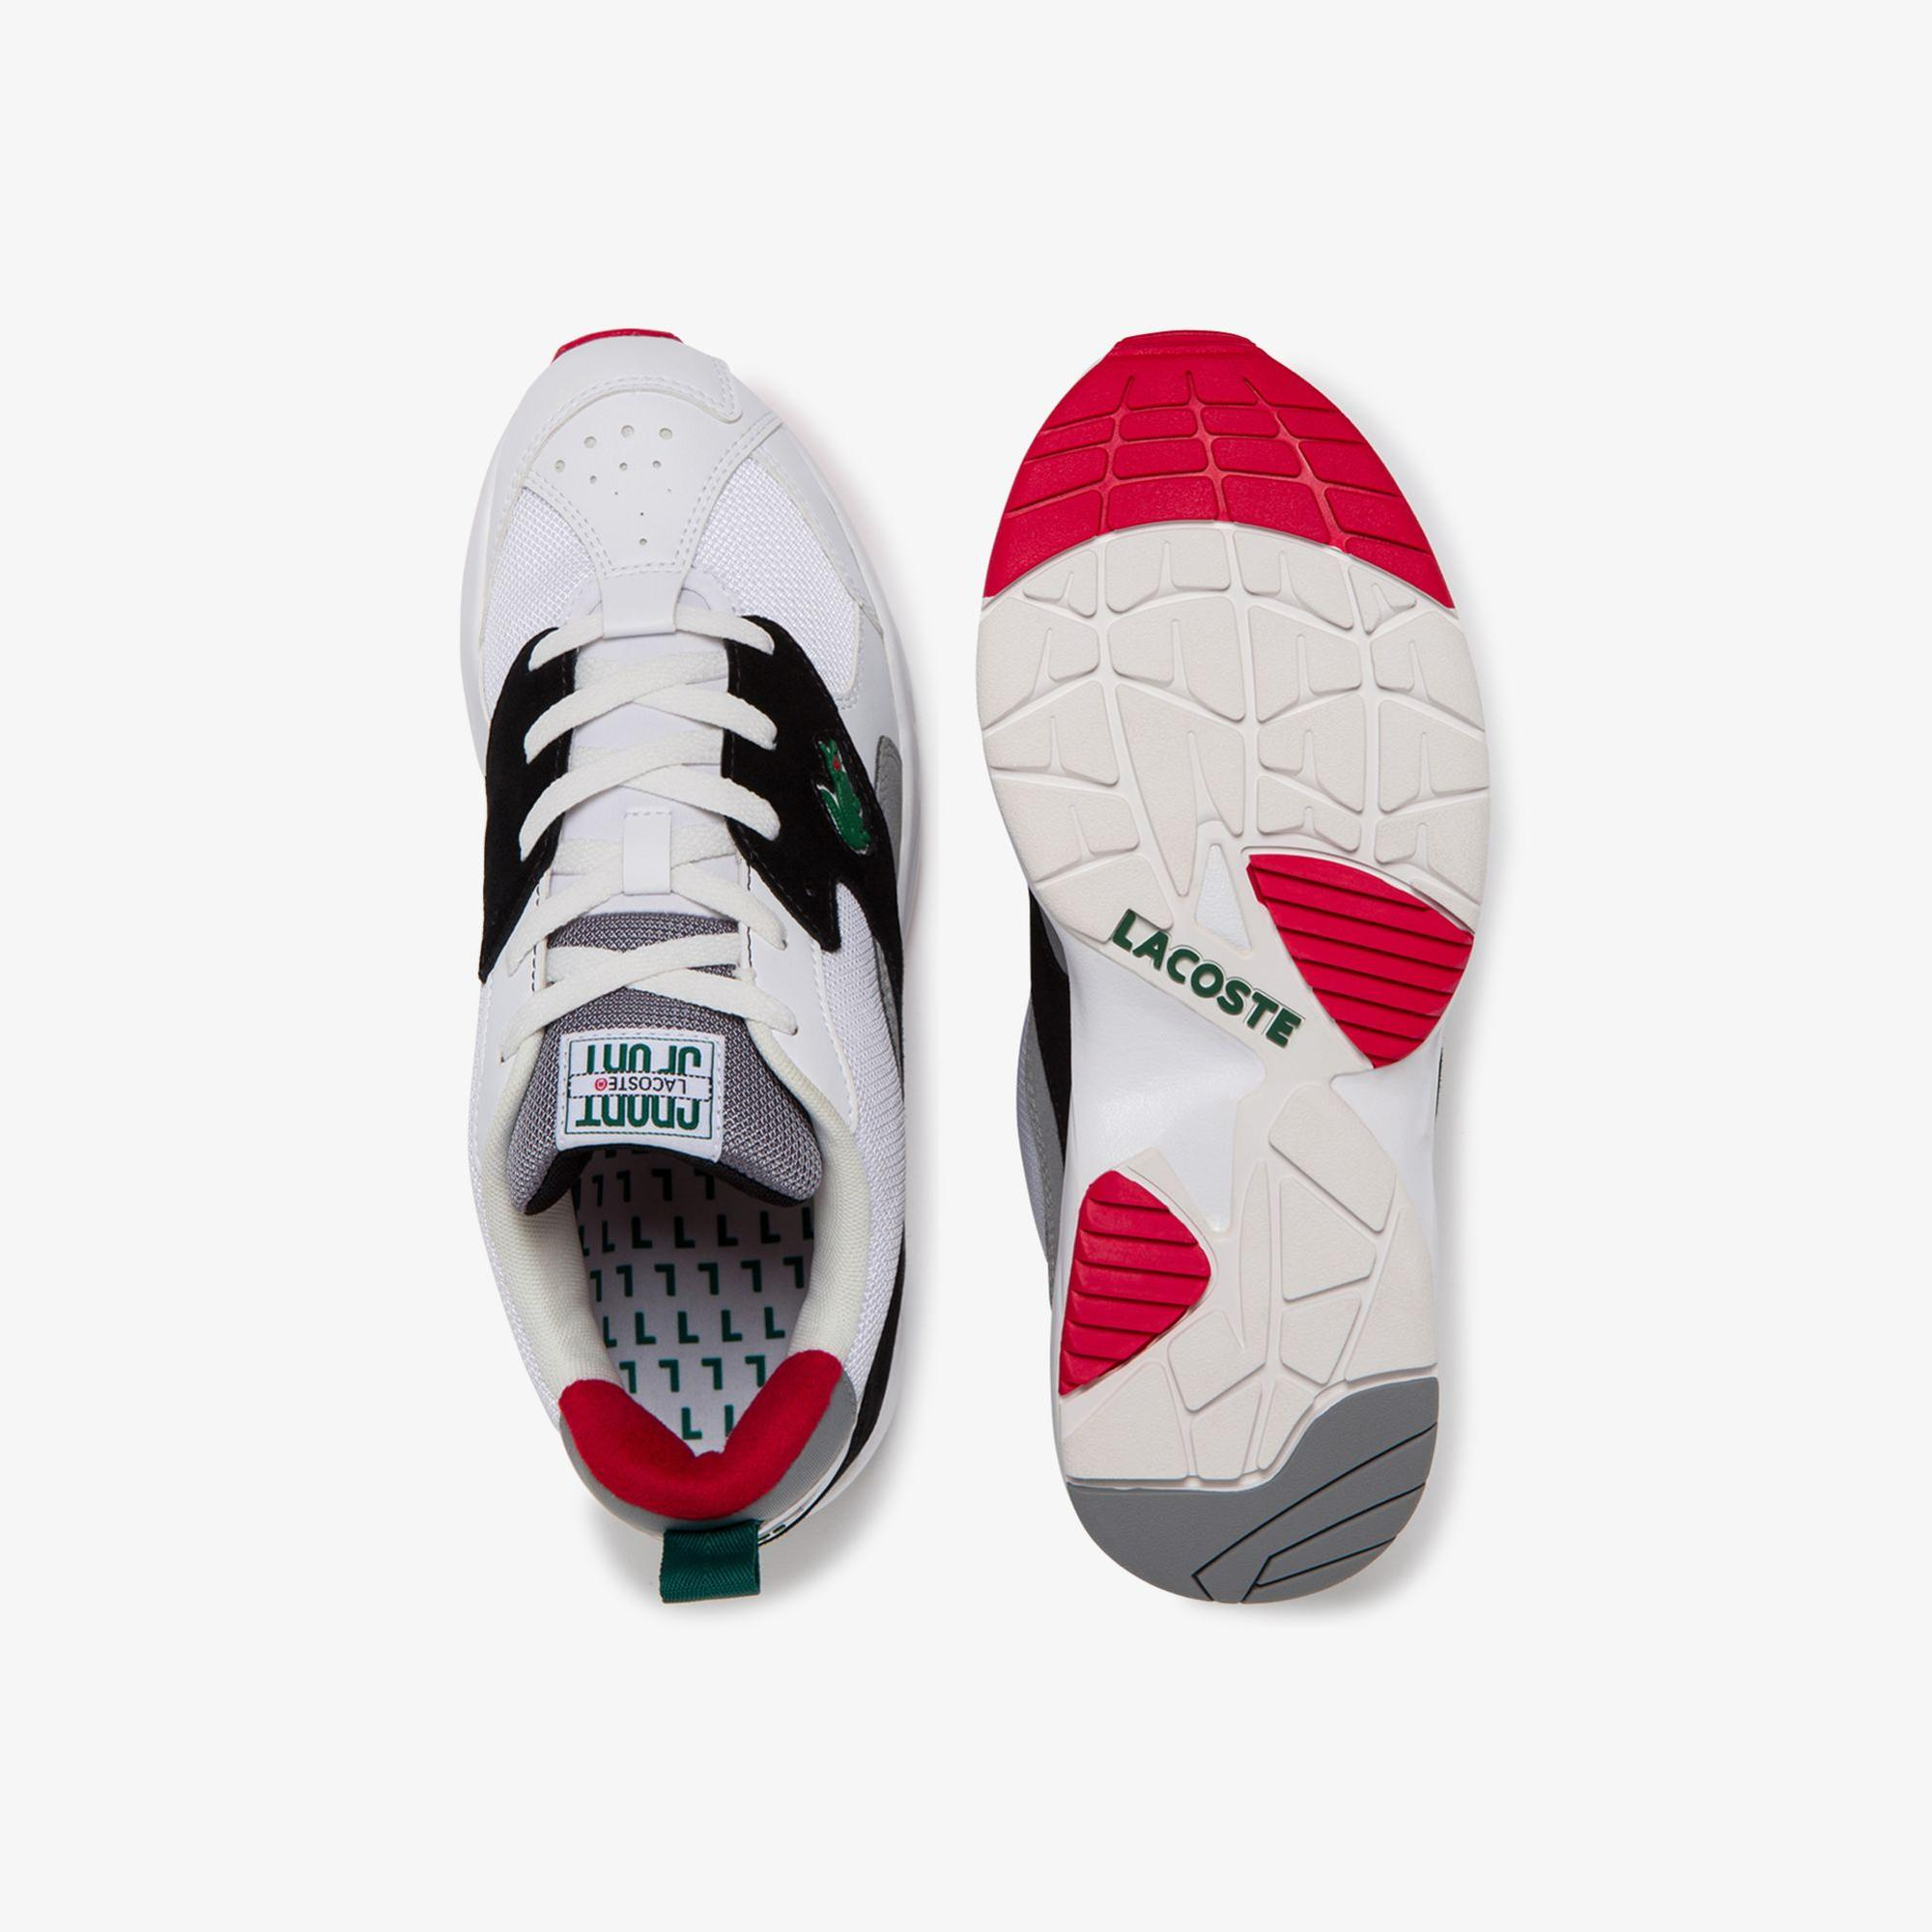 Lacoste Storm 96 120 4 US Men's Sneakers